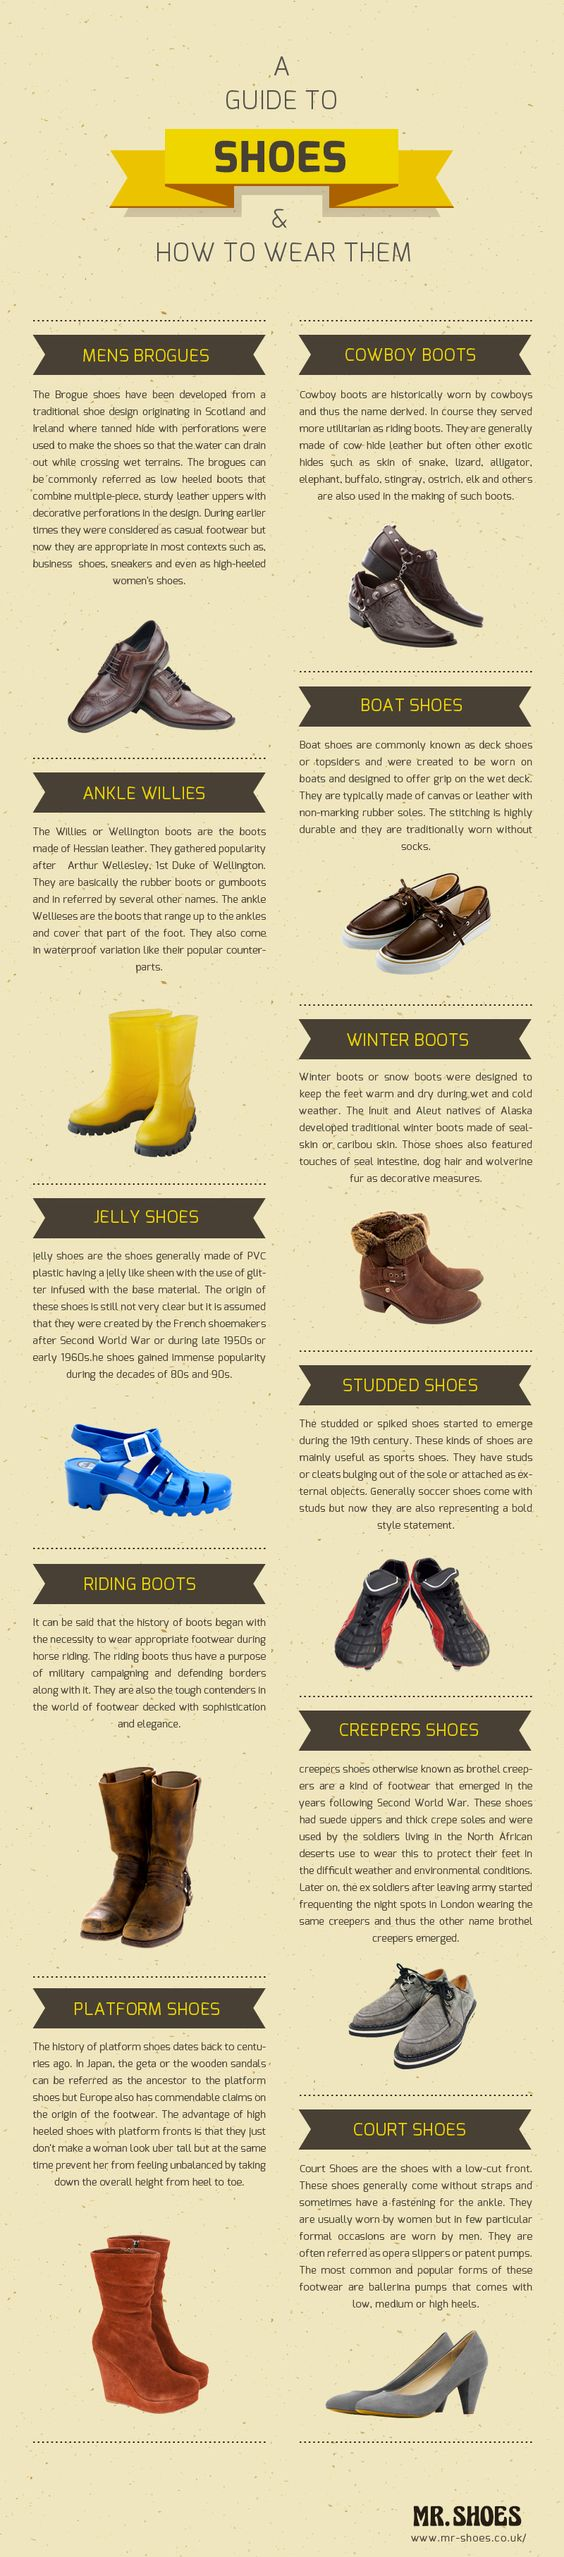 A guide to shoes and how to wear them.  http://www.mr-shoes.co.uk/